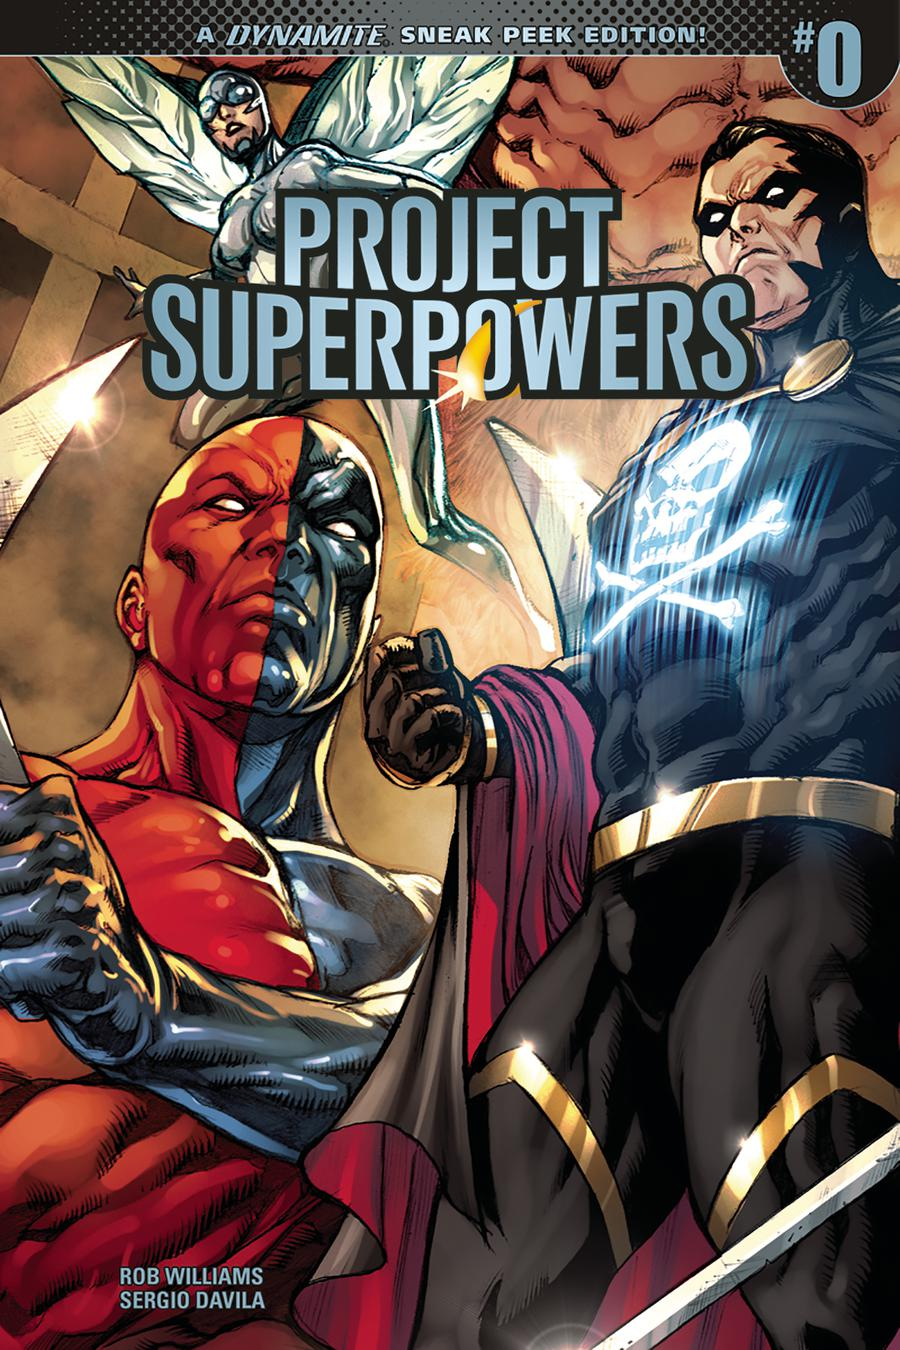 Project Superpowers Vol 3 #0 Cover D Incentive Sergio Davila Sneak Peek Variant Cover